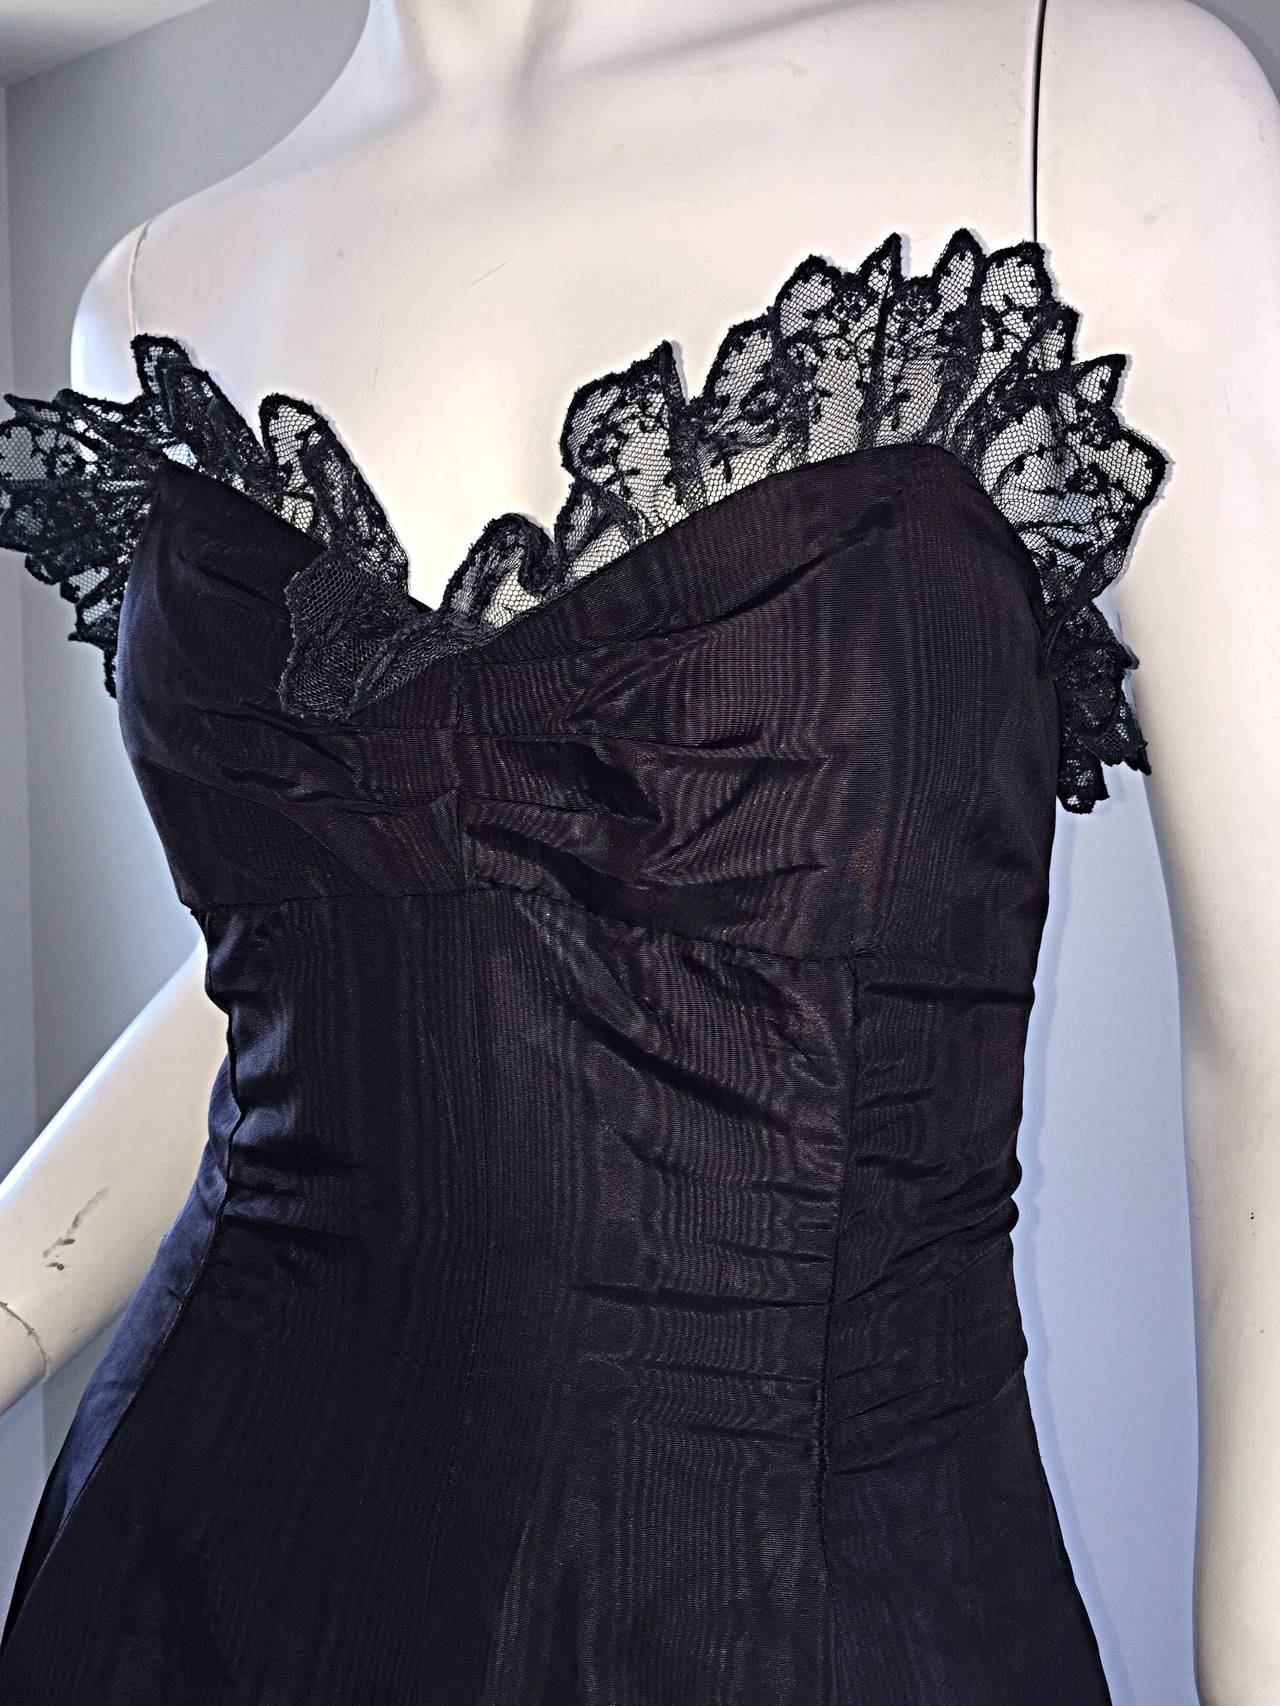 Gorgeous 1950s strapless silk taffeta dress! Jet black color, with black lace accents at bust. Couture quality workmanship, with a built in underdress to help hold the dress up, and boning on interior bust. Full skirt, with plenty of room to add